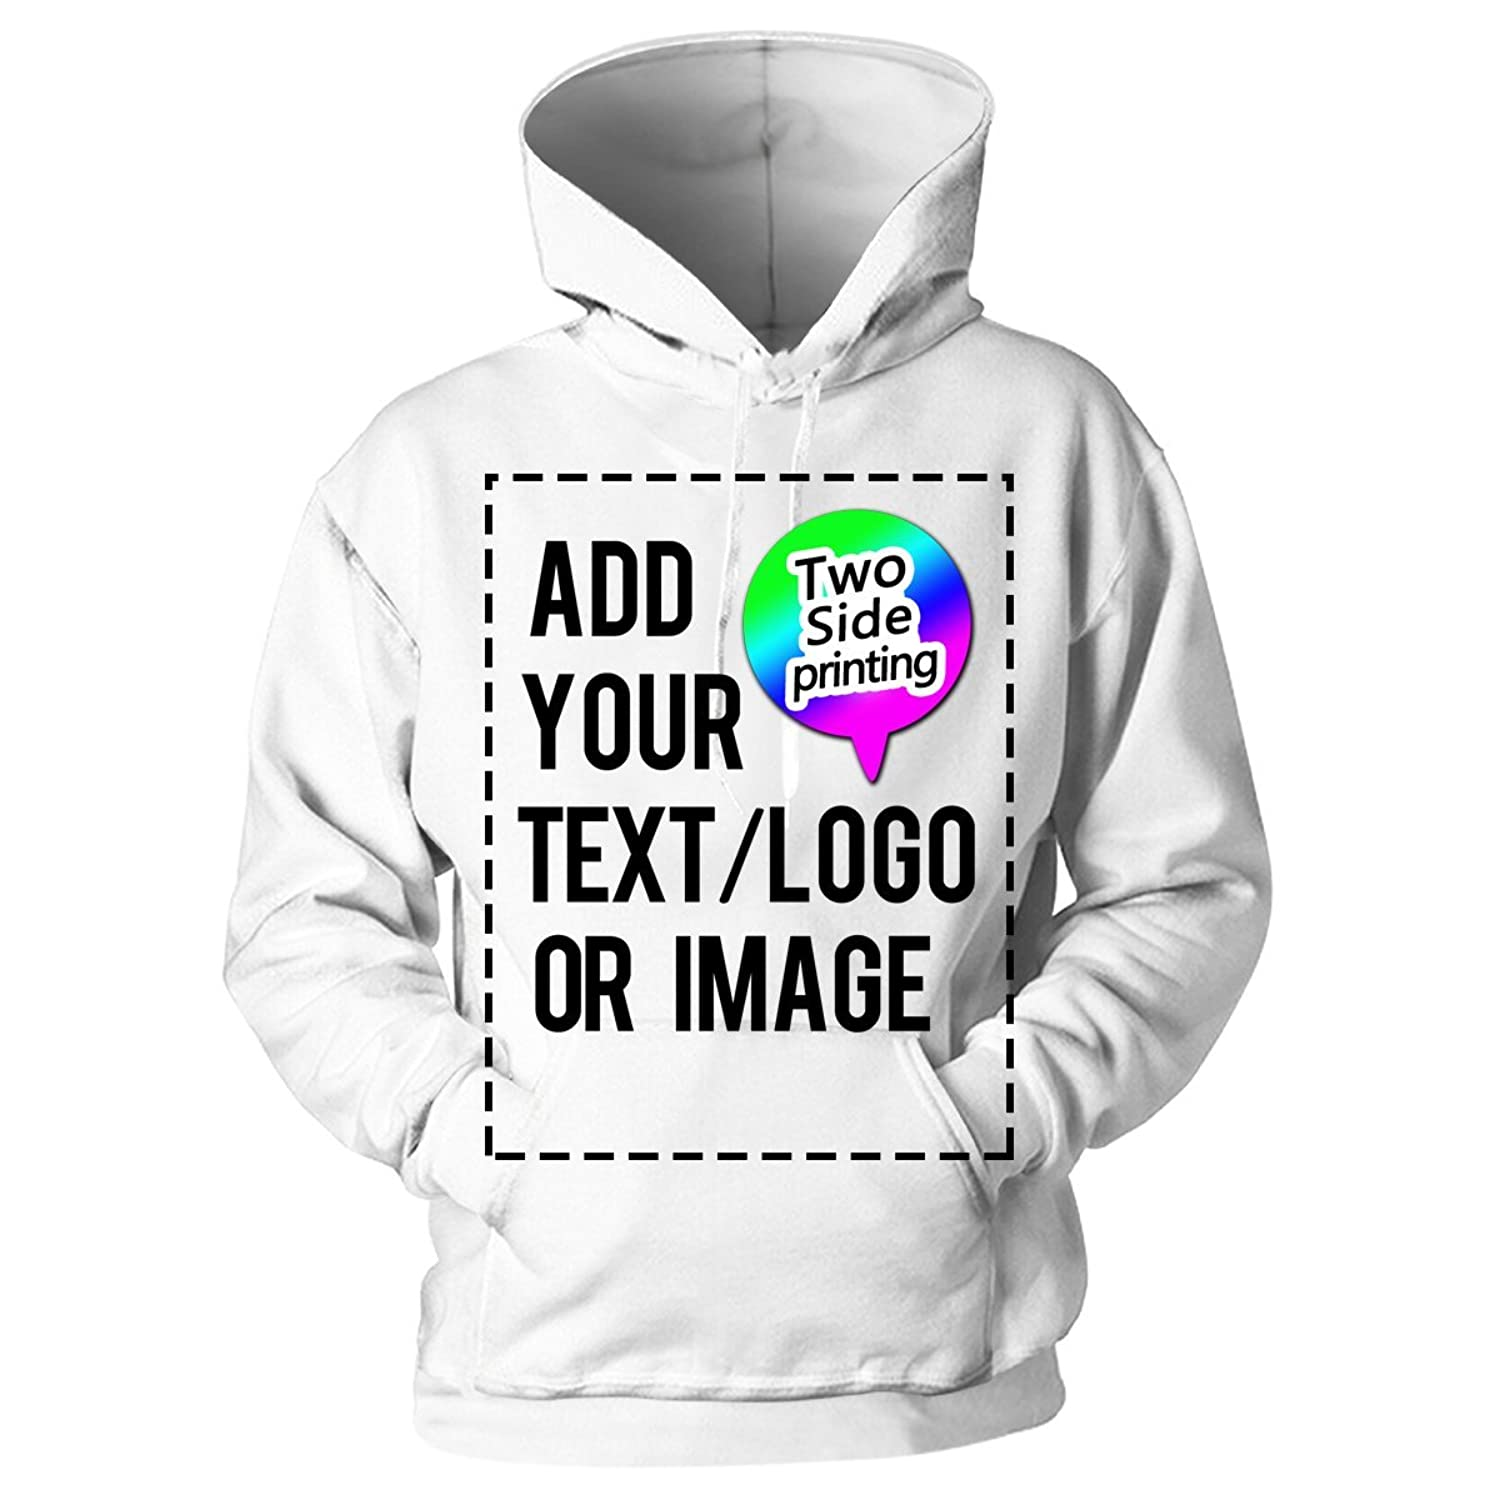 5df206c53 Create your own hoodie by placing your image on the fabric! Add your own  image to have the unique attire!You can always send us a image if you have  any ...